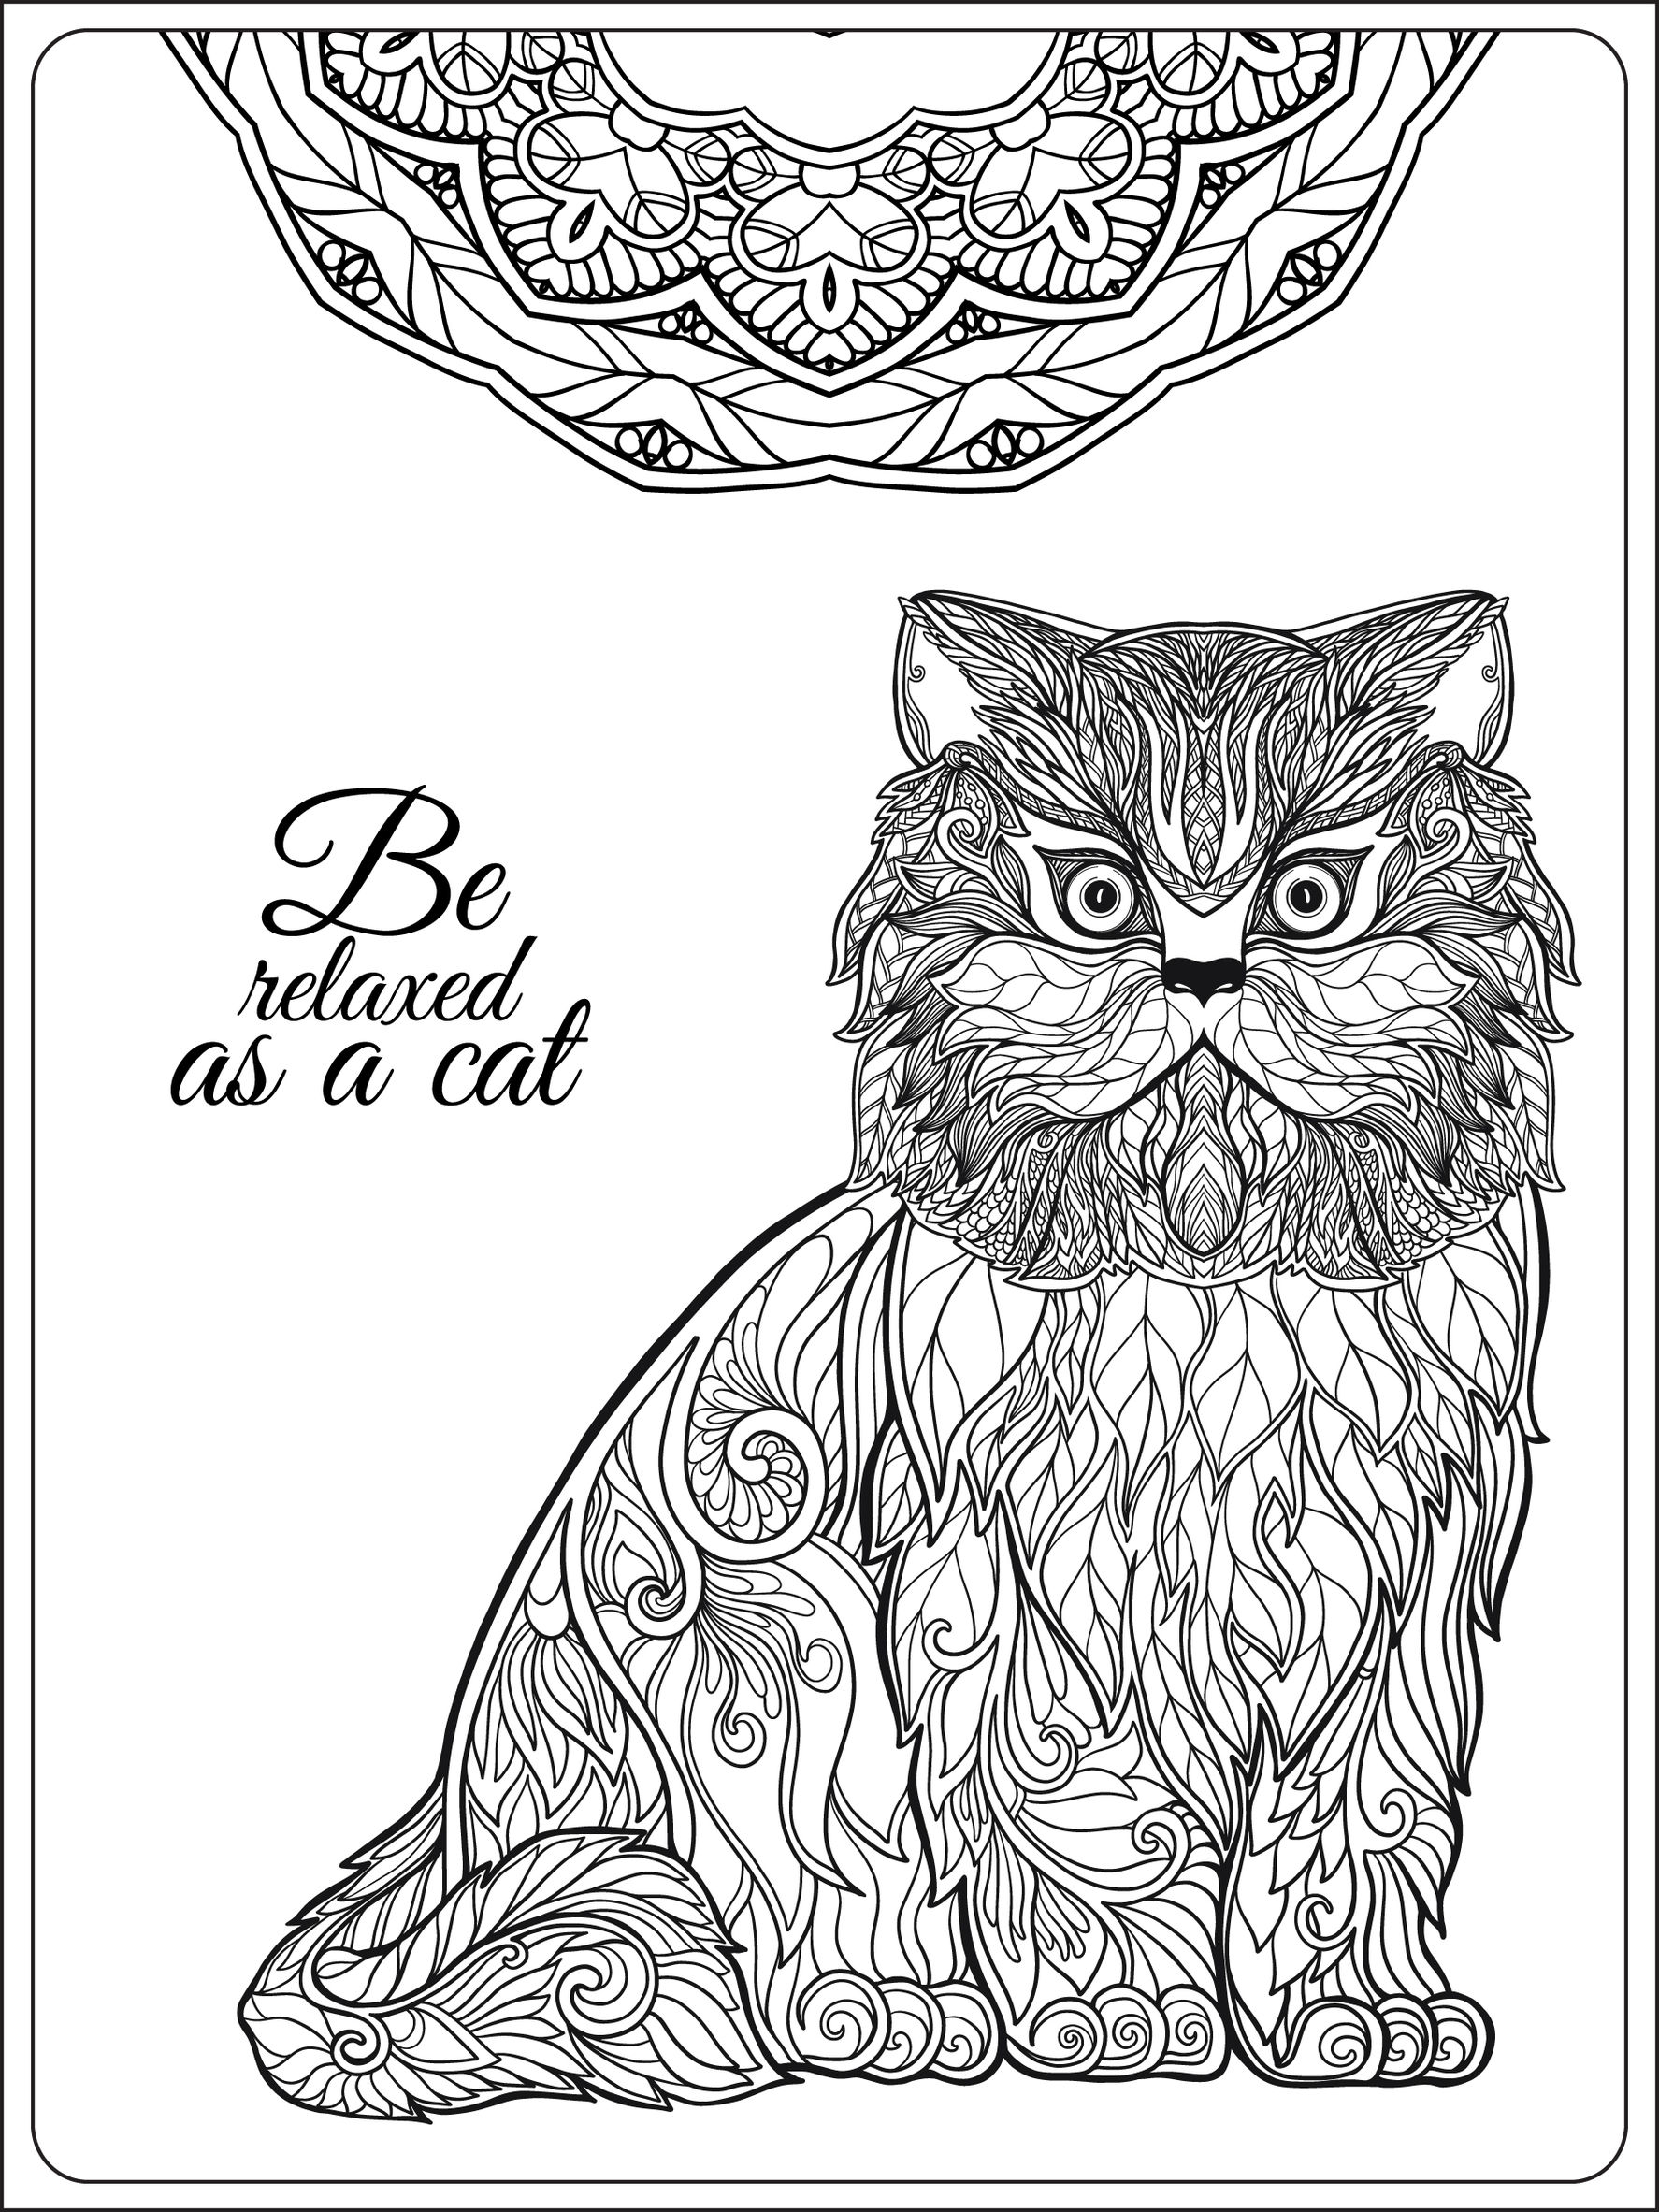 pages be relaxing as a cat by elena besedina animals coloring pages for adults justcolor. Black Bedroom Furniture Sets. Home Design Ideas